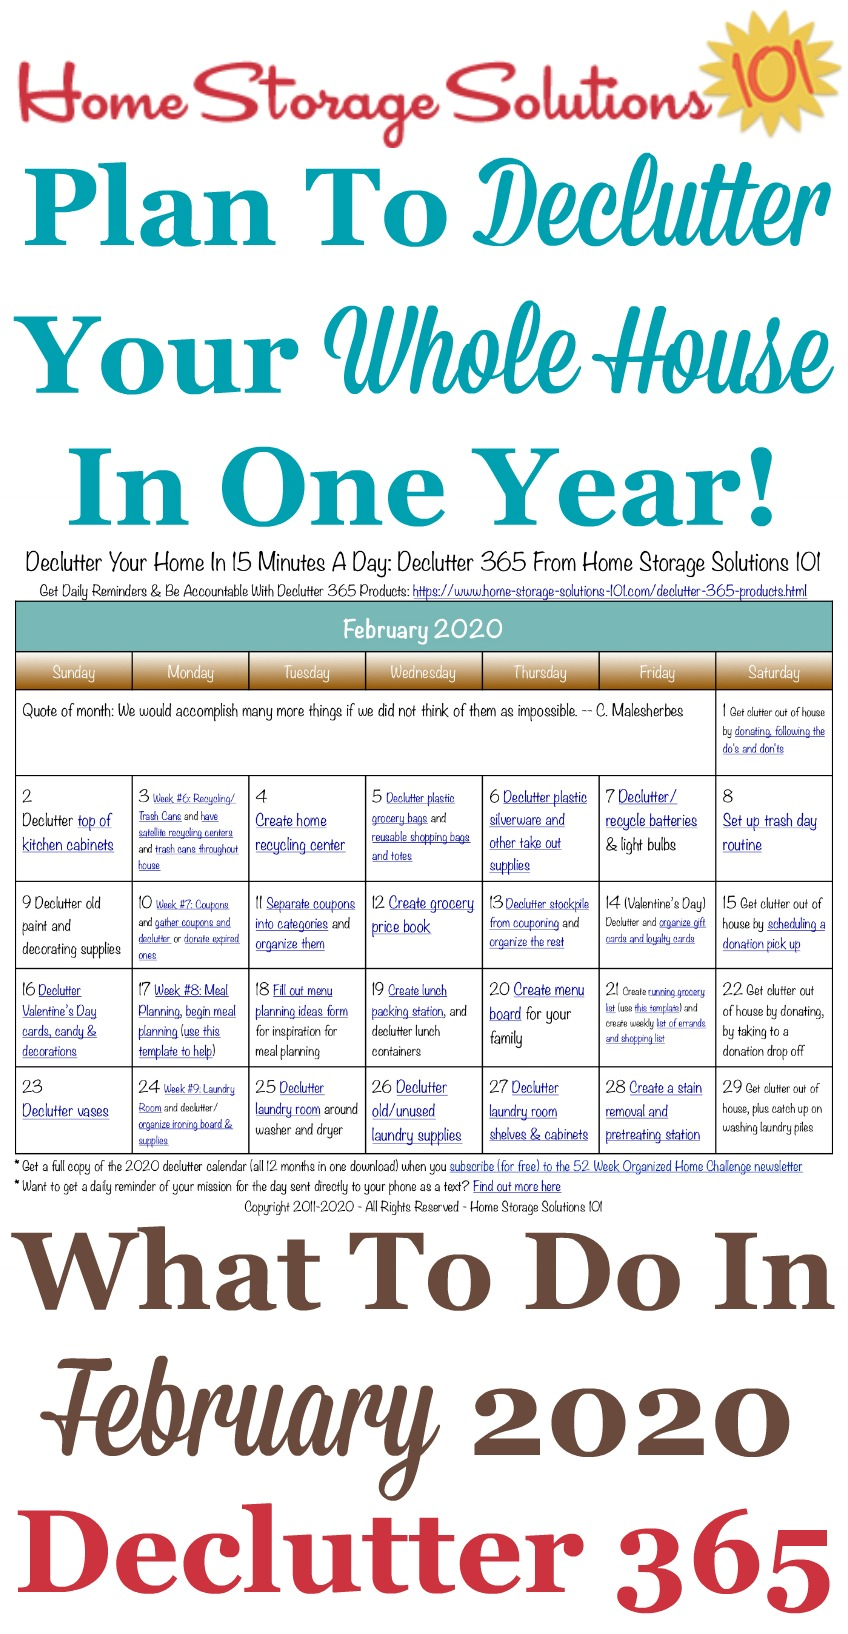 Free printable February 2020 #decluttering calendar with daily 15 minute missions. Follow the entire #Declutter365 plan provided by Home Storage Solutions 101 to #declutter your whole house in a year.